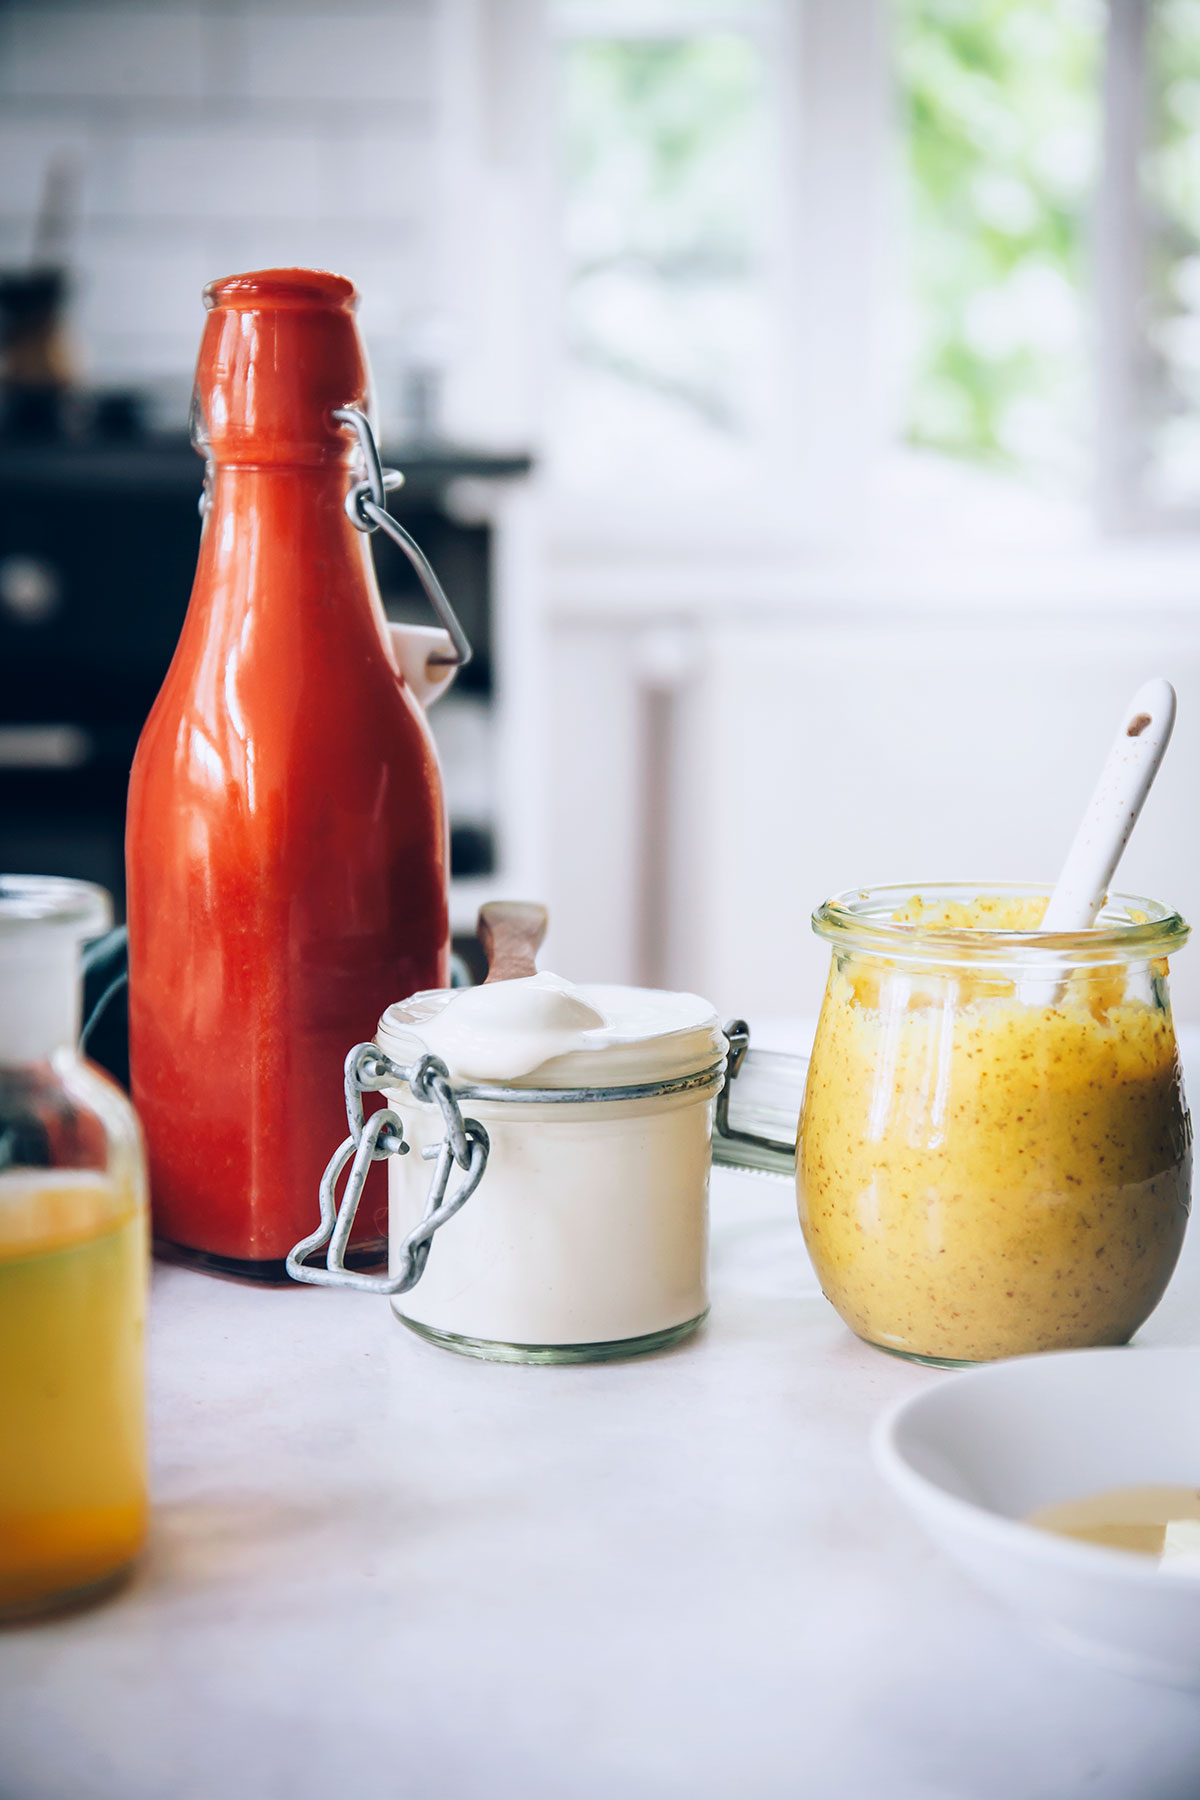 How to Make Homemade Condiments